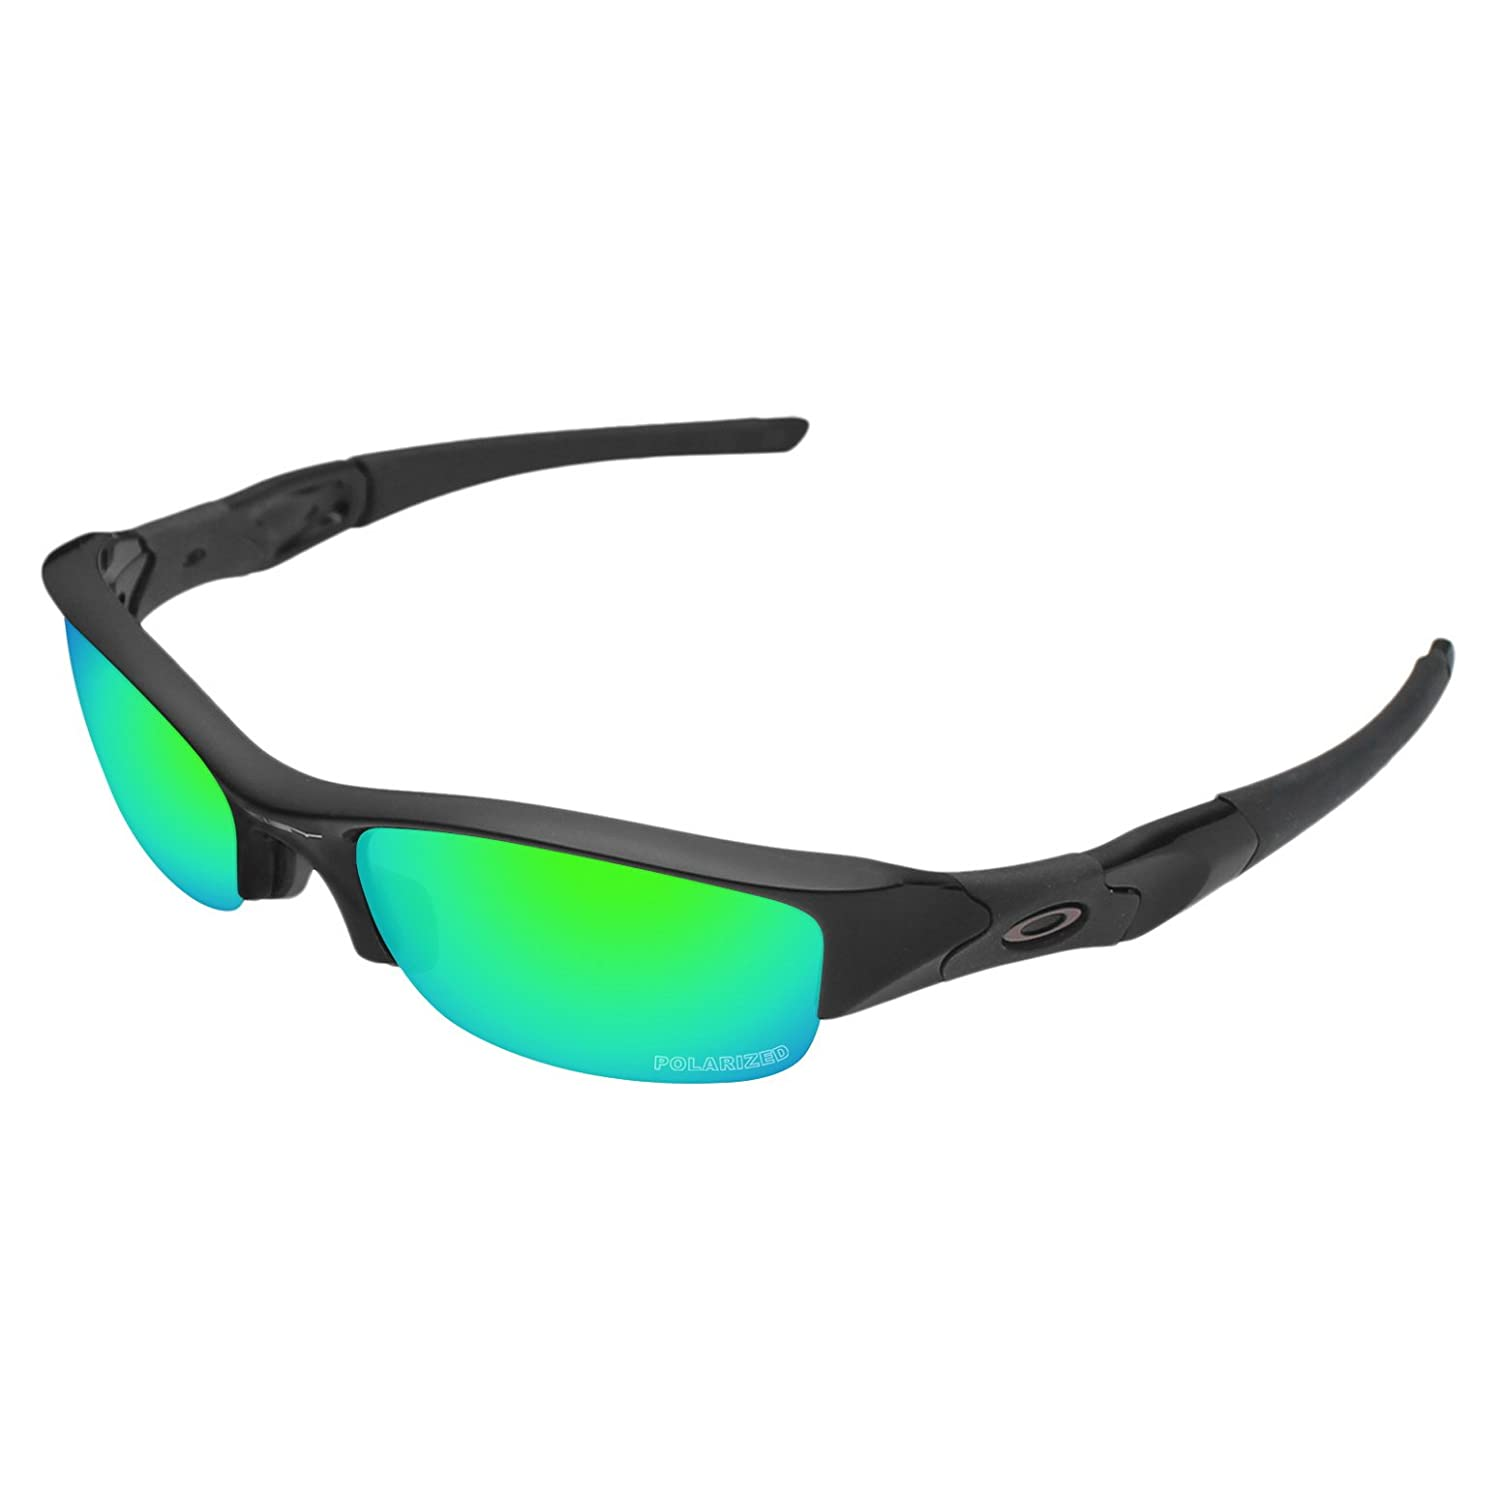 f27e80016ec Tintart Performance Replacement Lenses for Oakley Flak Jacket Polarized  Etched-Emerald Green  Amazon.ca  Clothing   Accessories